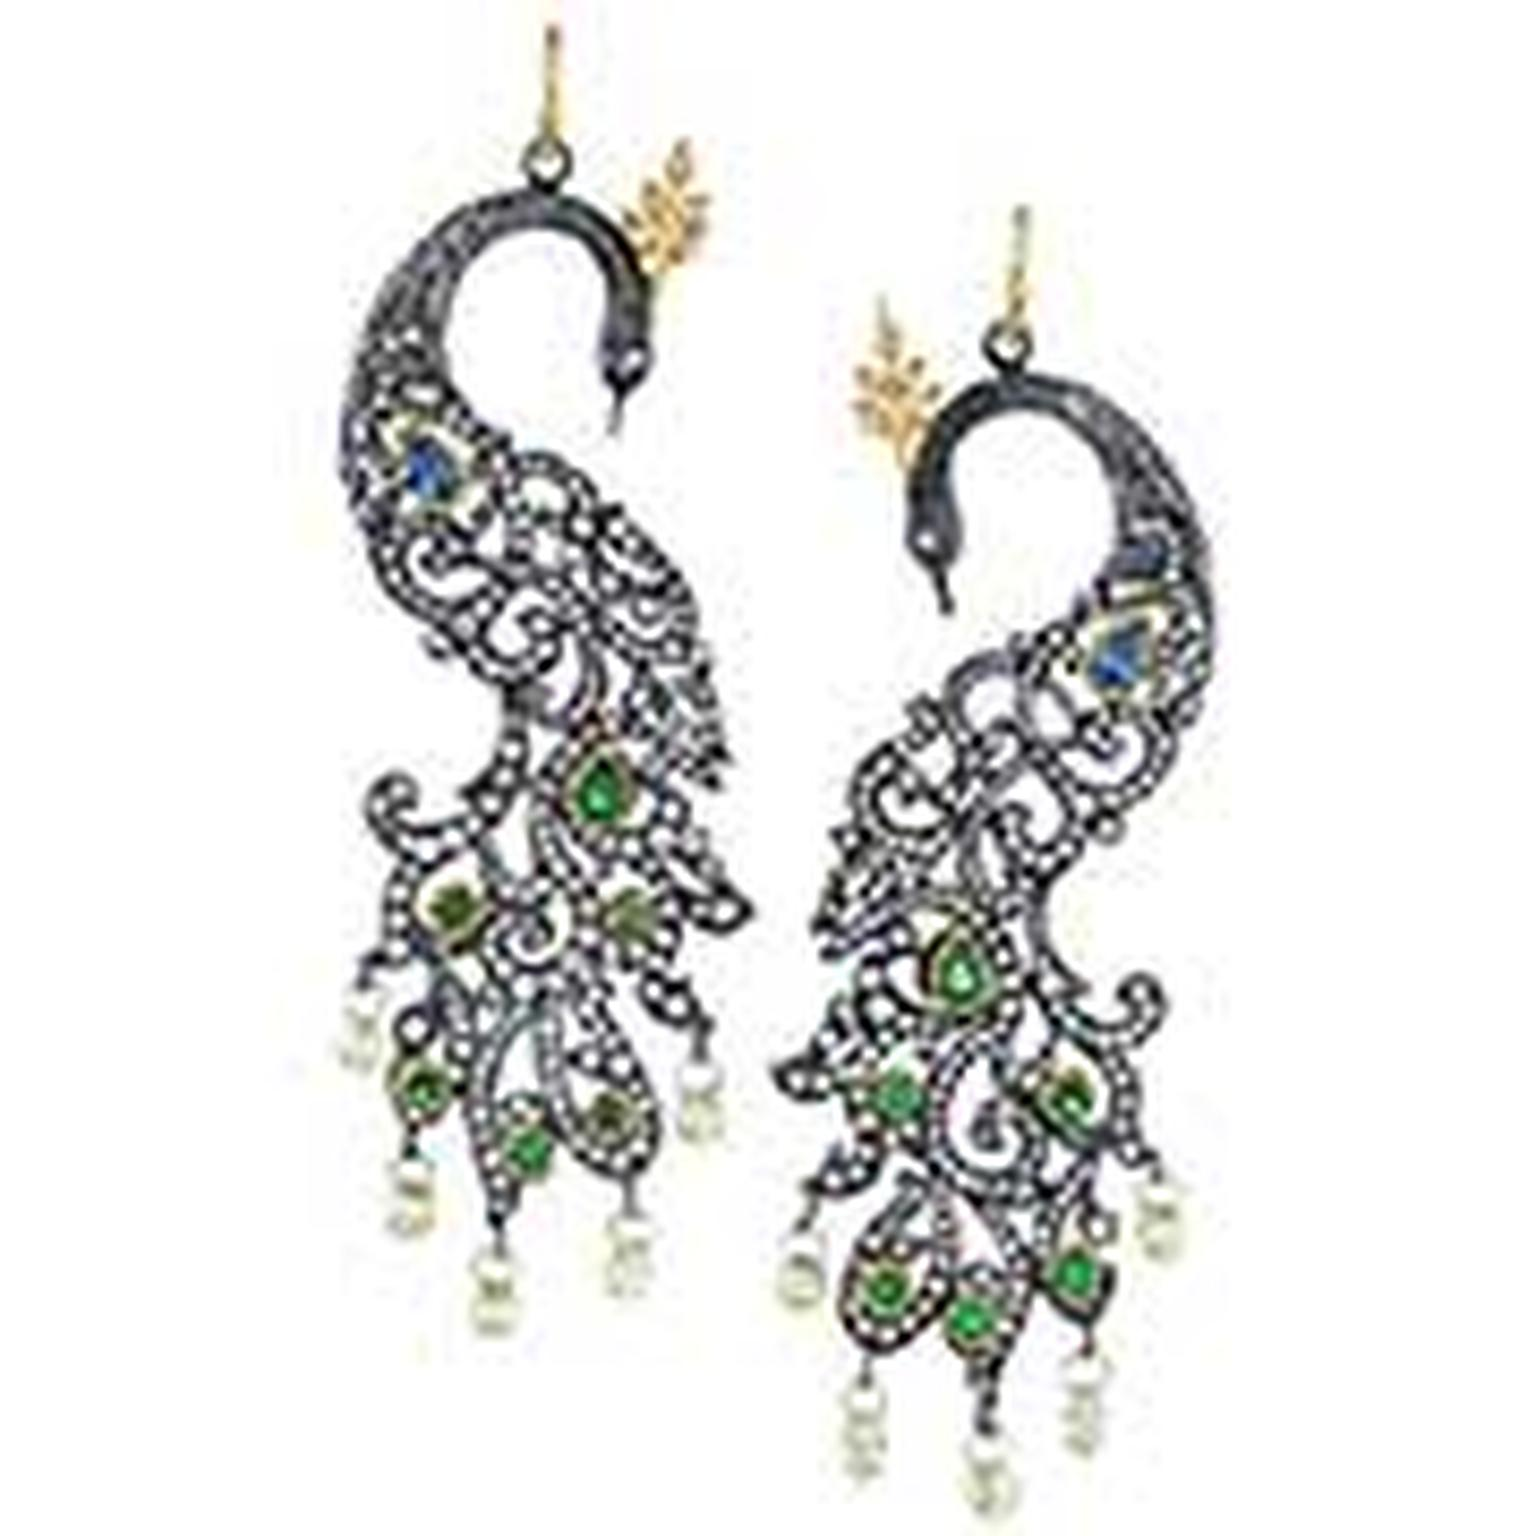 Arman Sarkisyan earrings